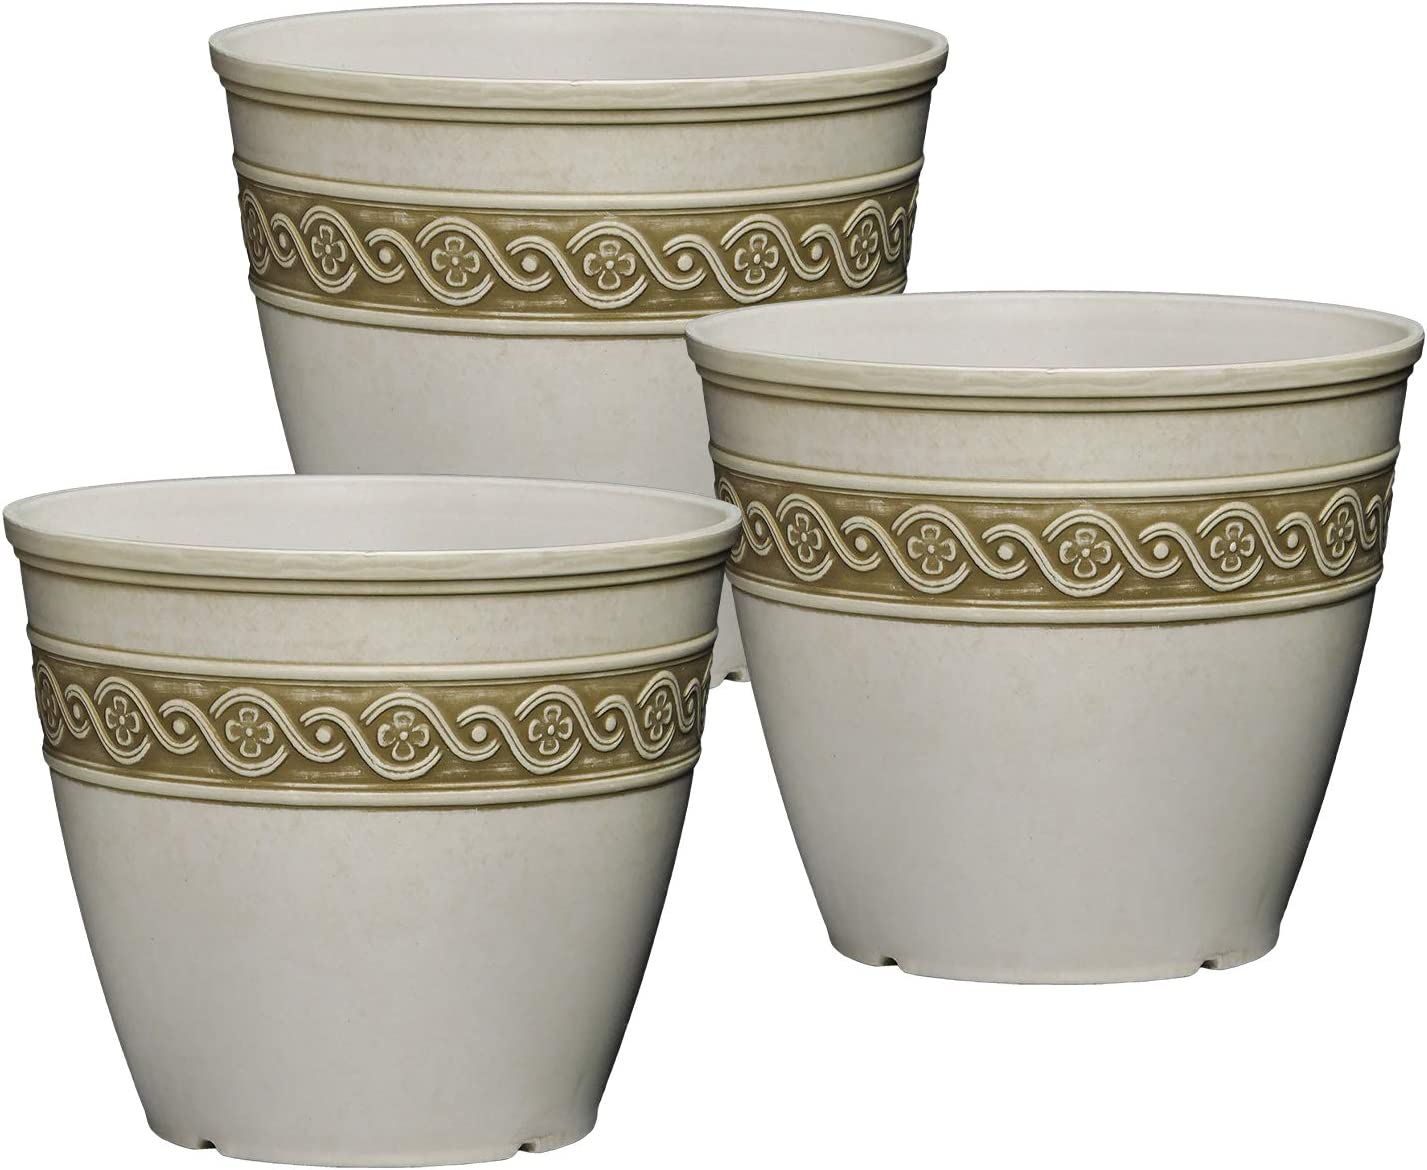 Classic Home and Garden 9408CP3D-514 Set of 3 8